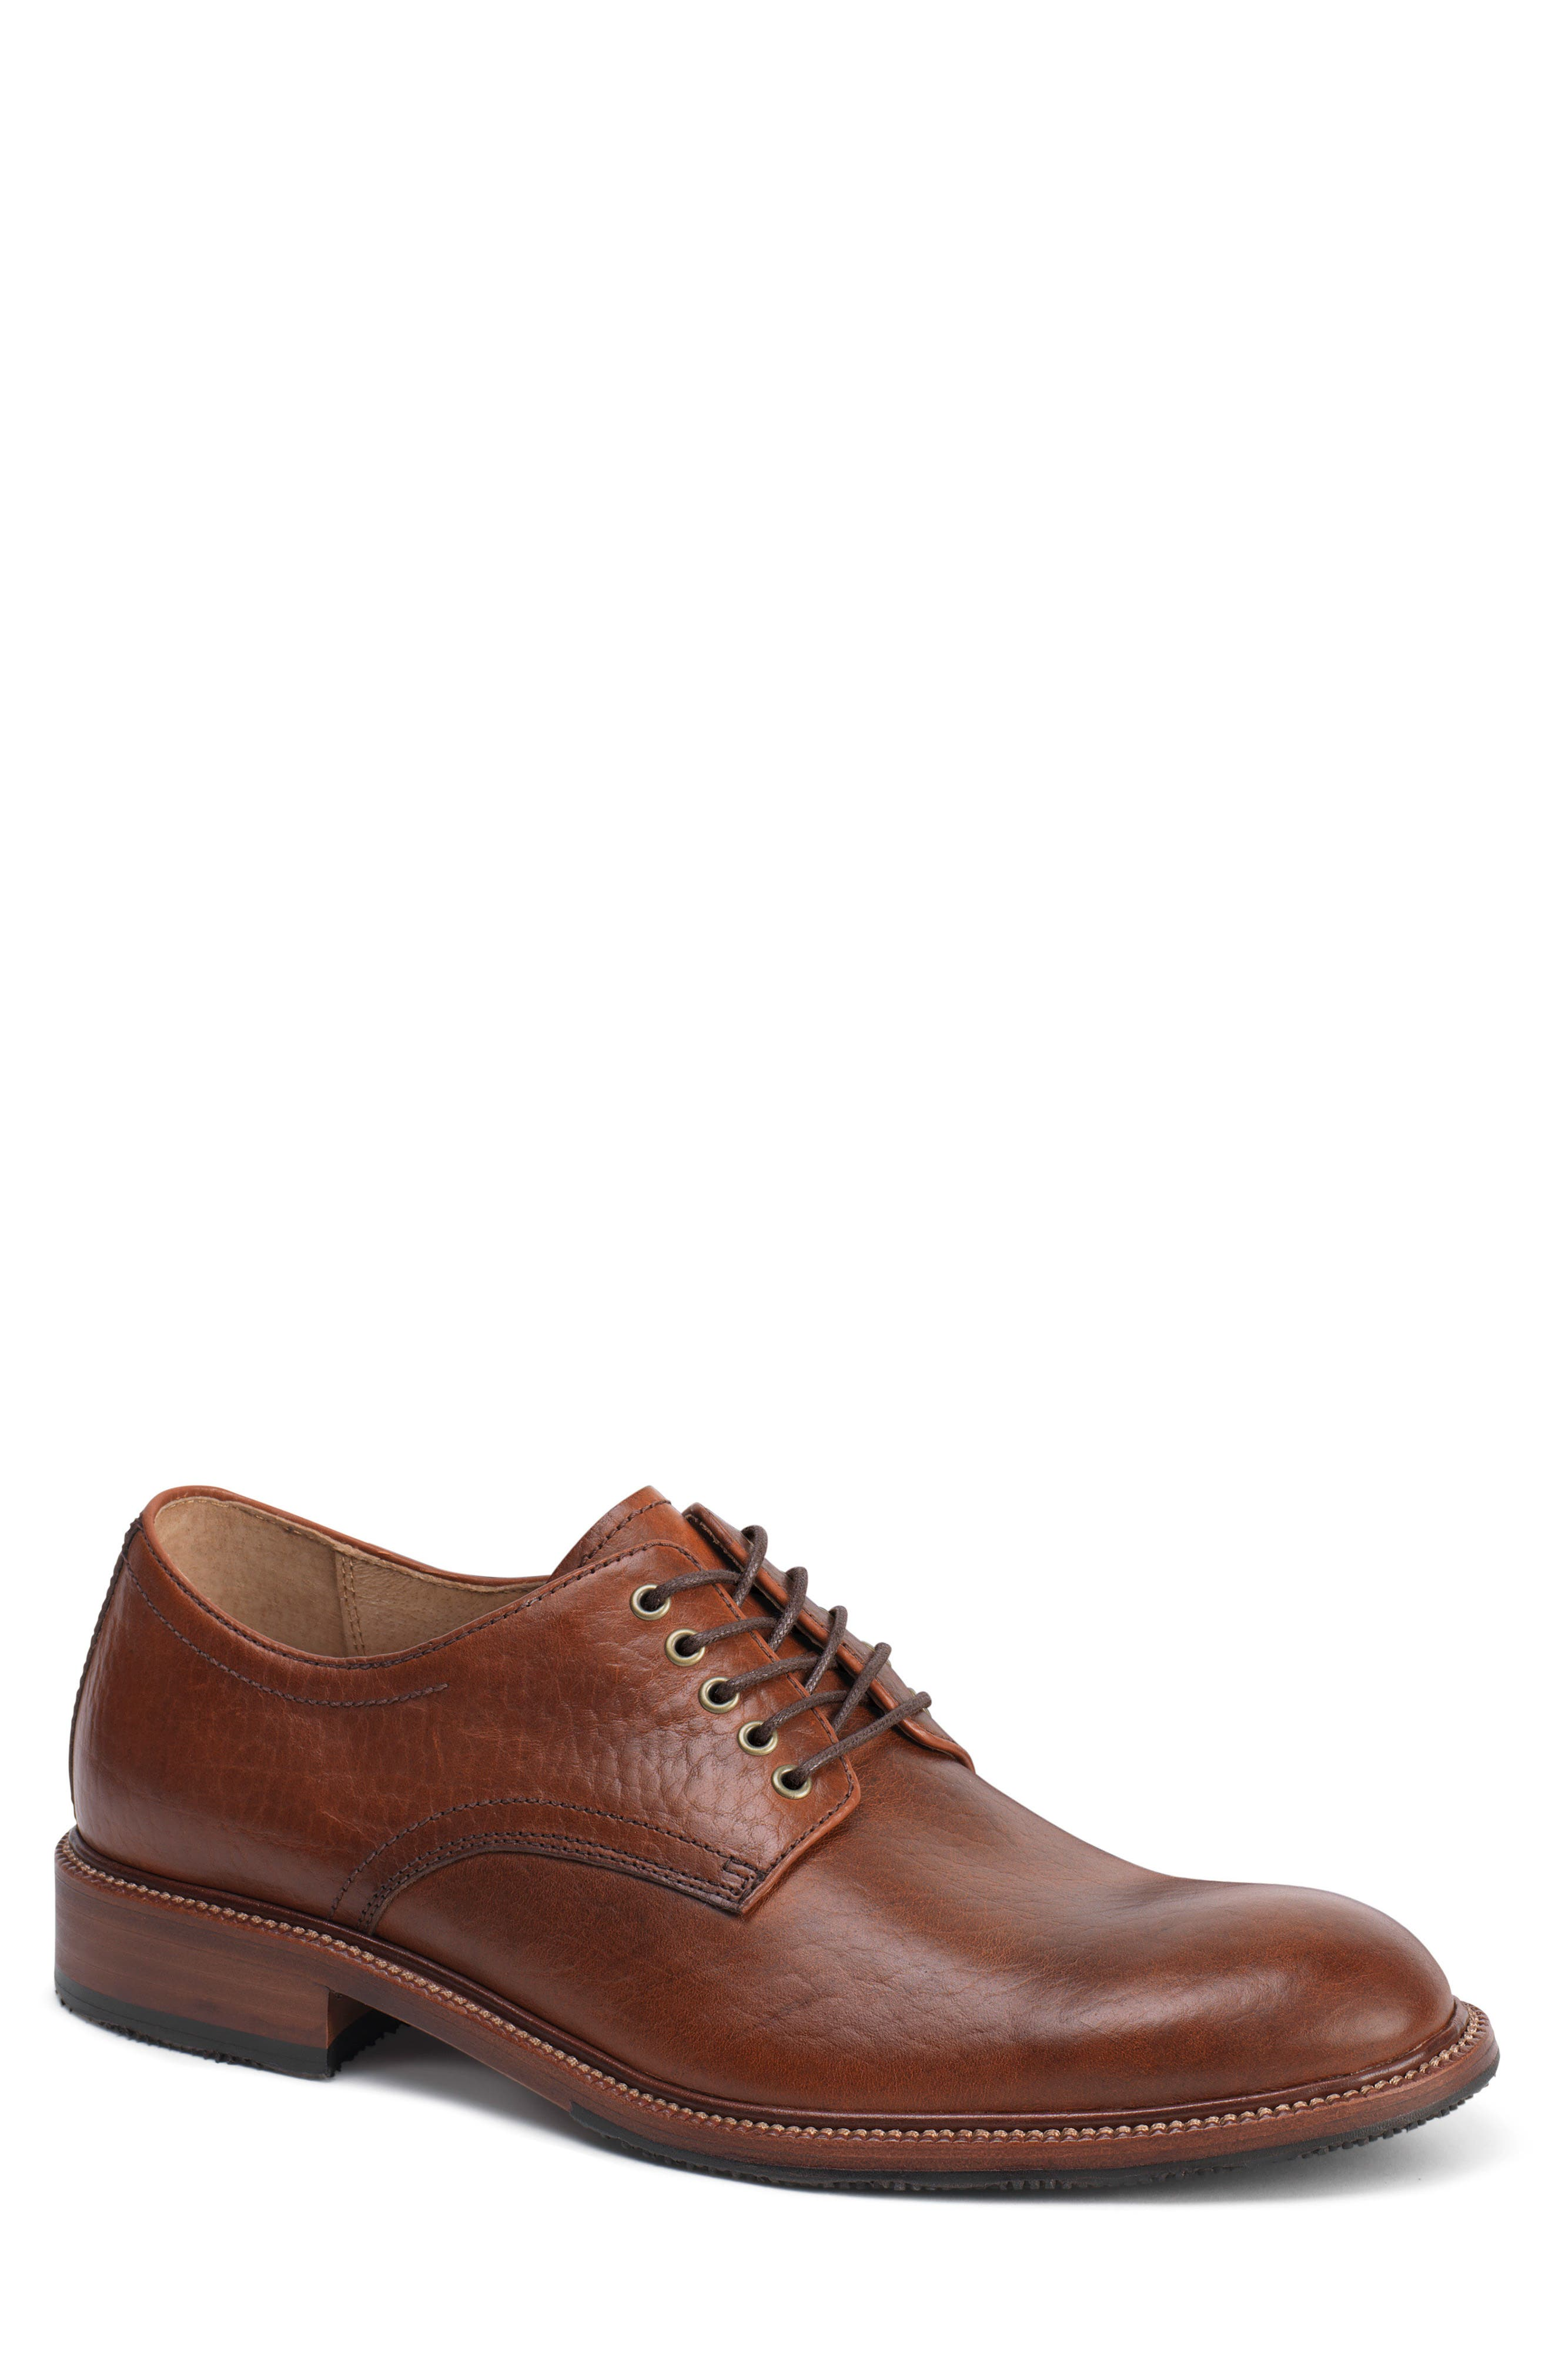 Alternate Image 1 Selected - Trask Landry Plain Toe Derby (Men)